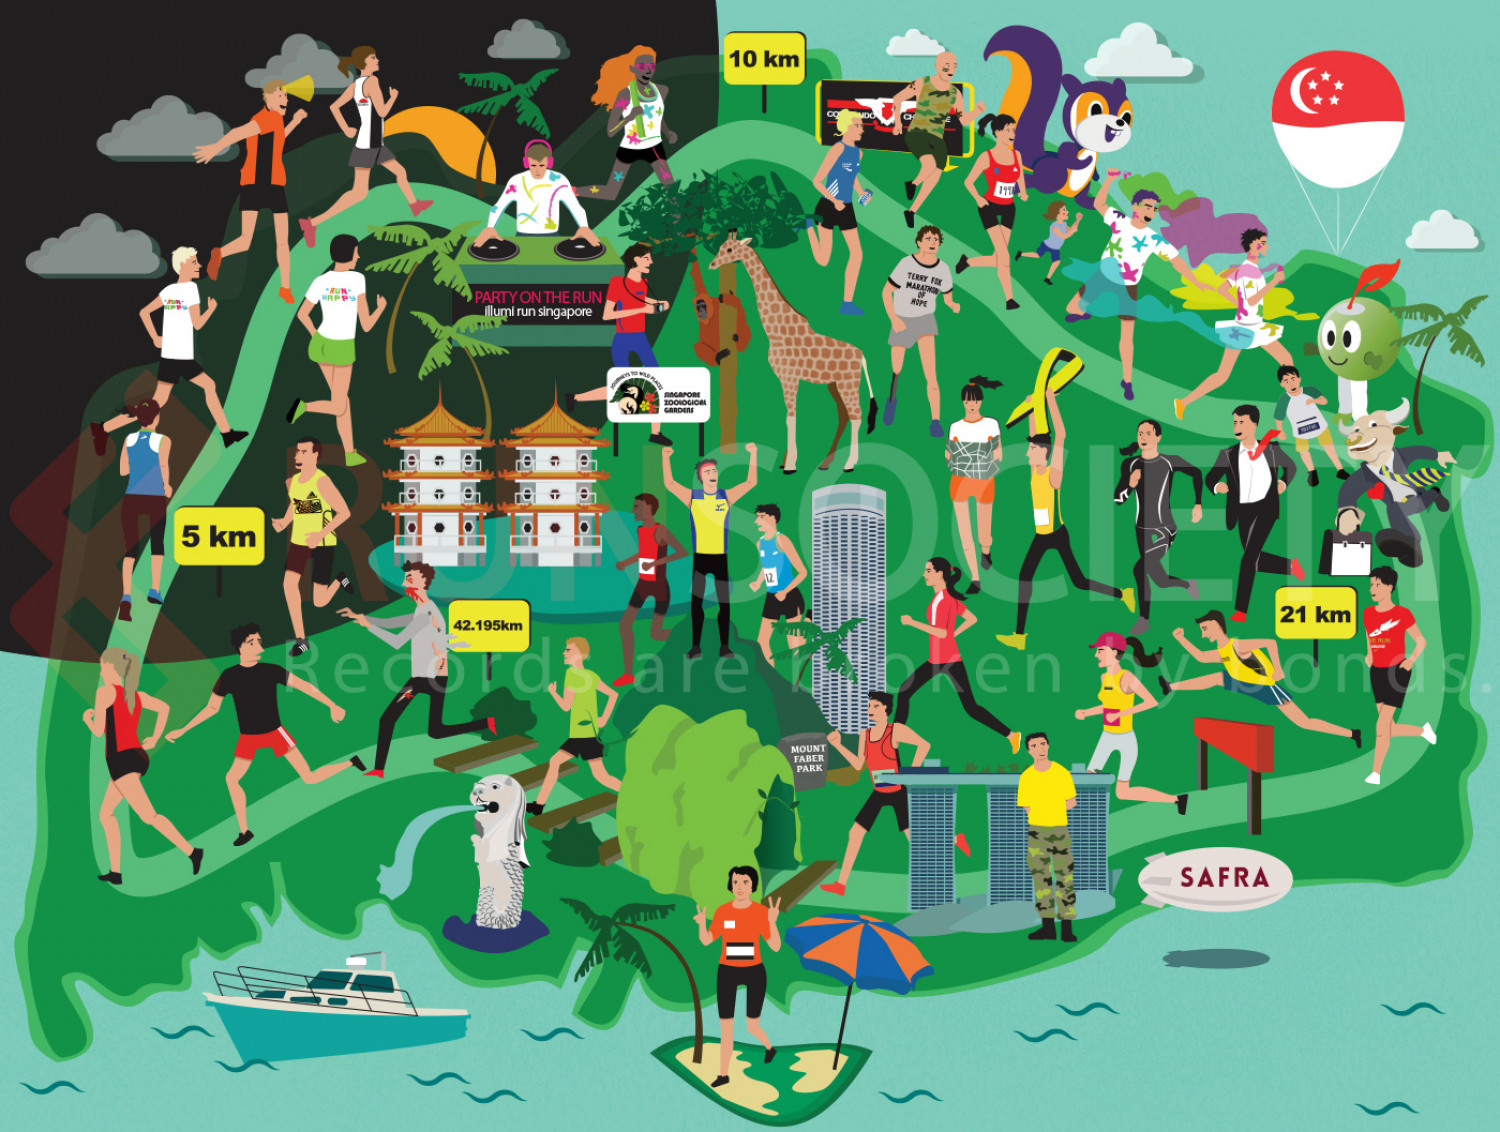 Singapore Popular Running Events at a Glance Infographic